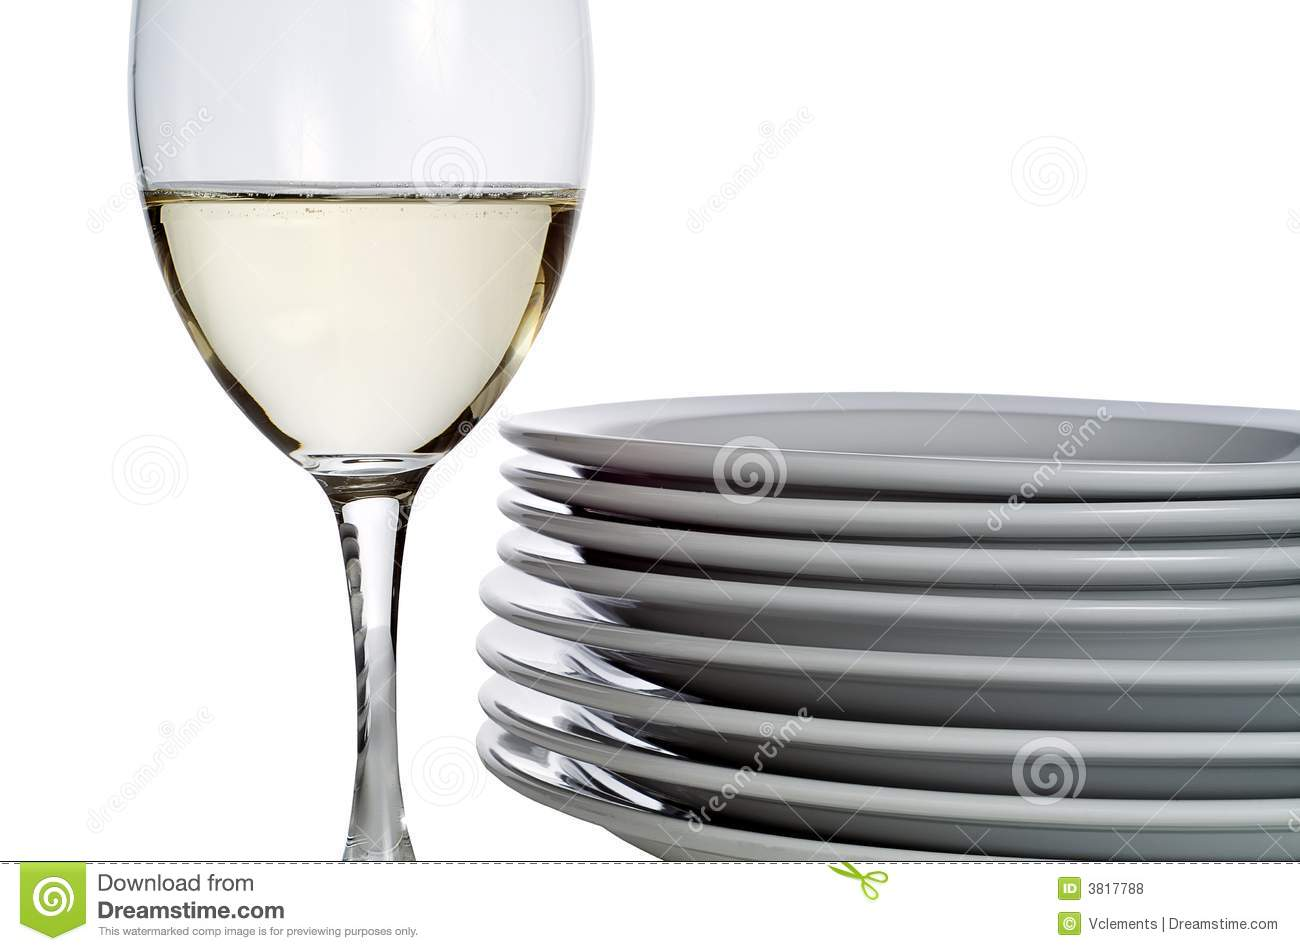 Wine glass and plates